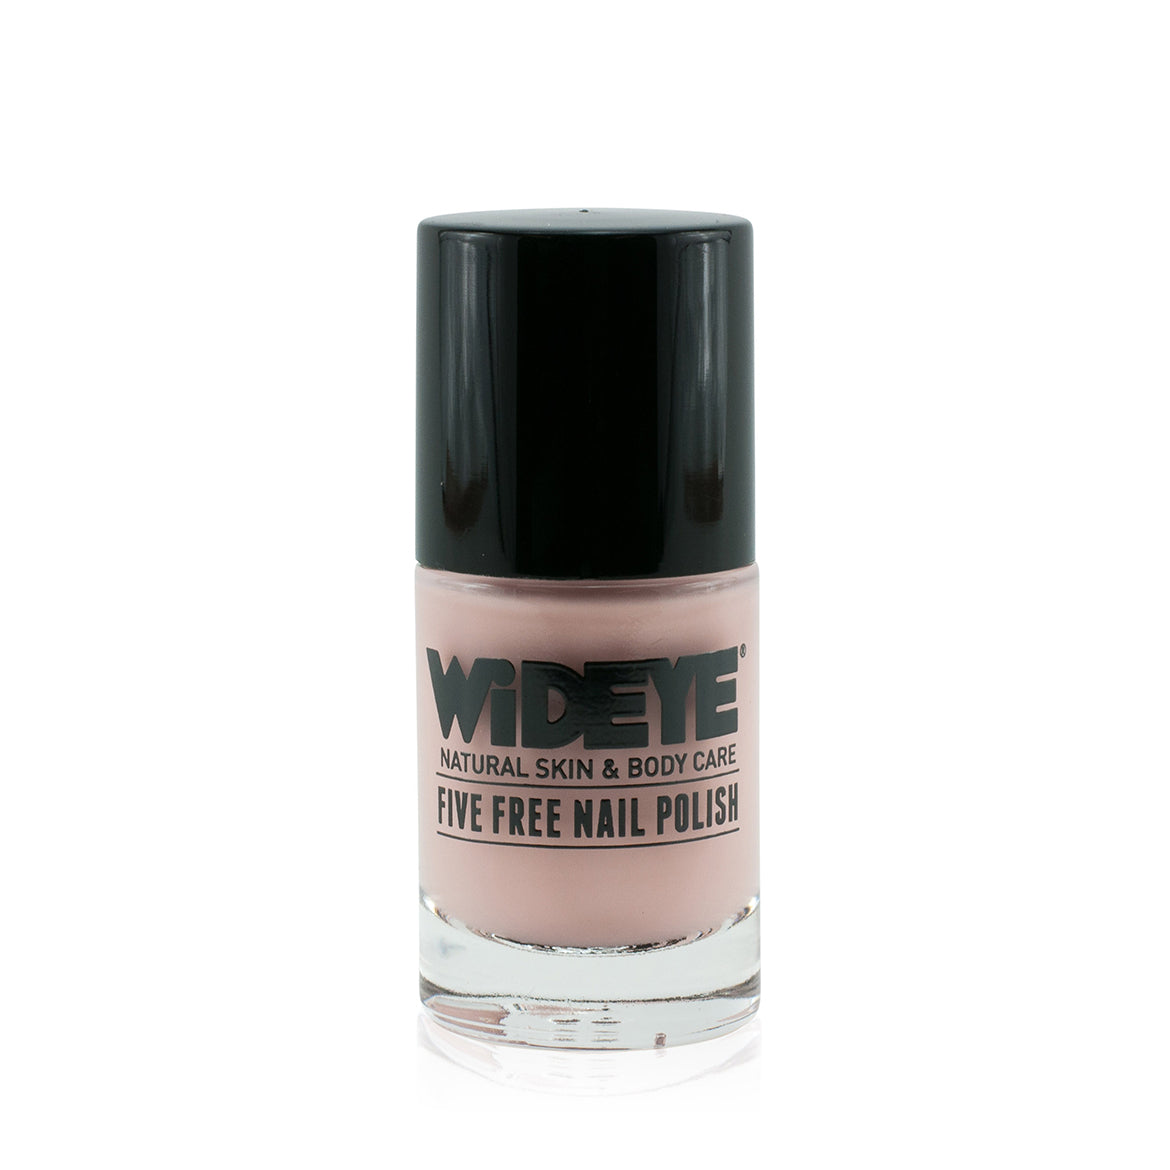 Pink skin tone nude nail varnish in glass bottle by WiDEYE.